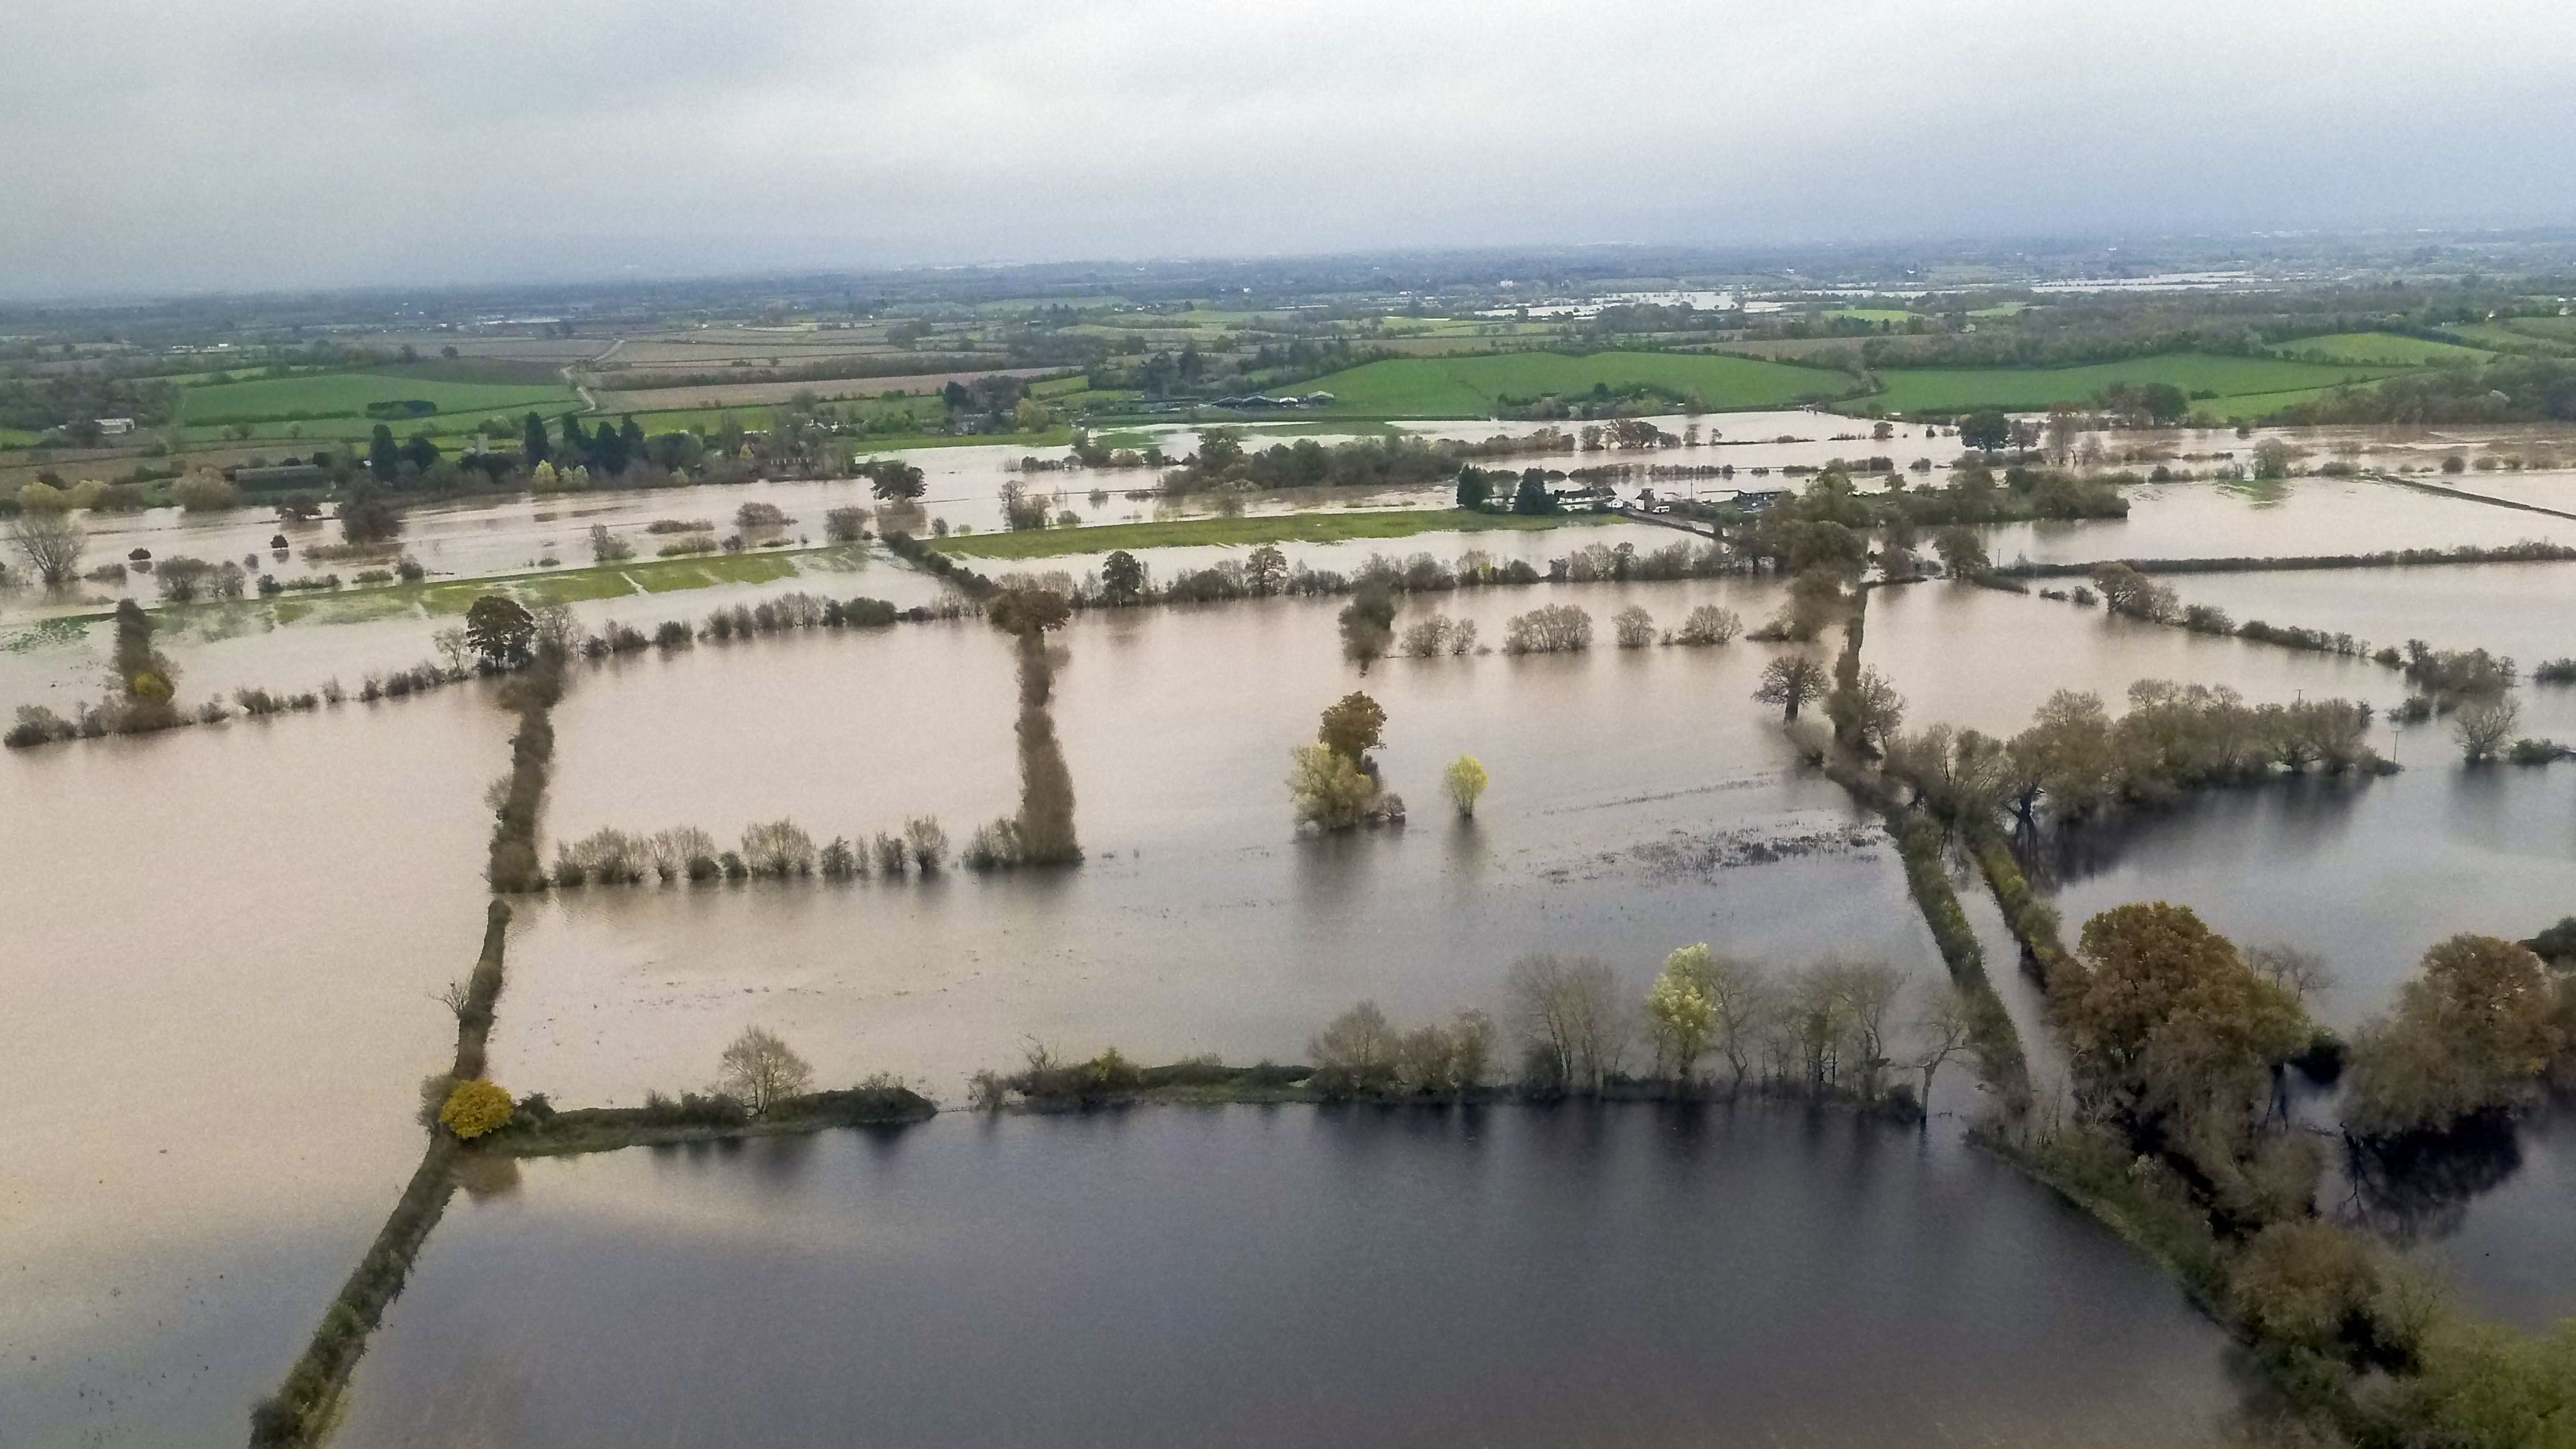 Floods chaos could continue until Tuesday, but relief from rain forecast